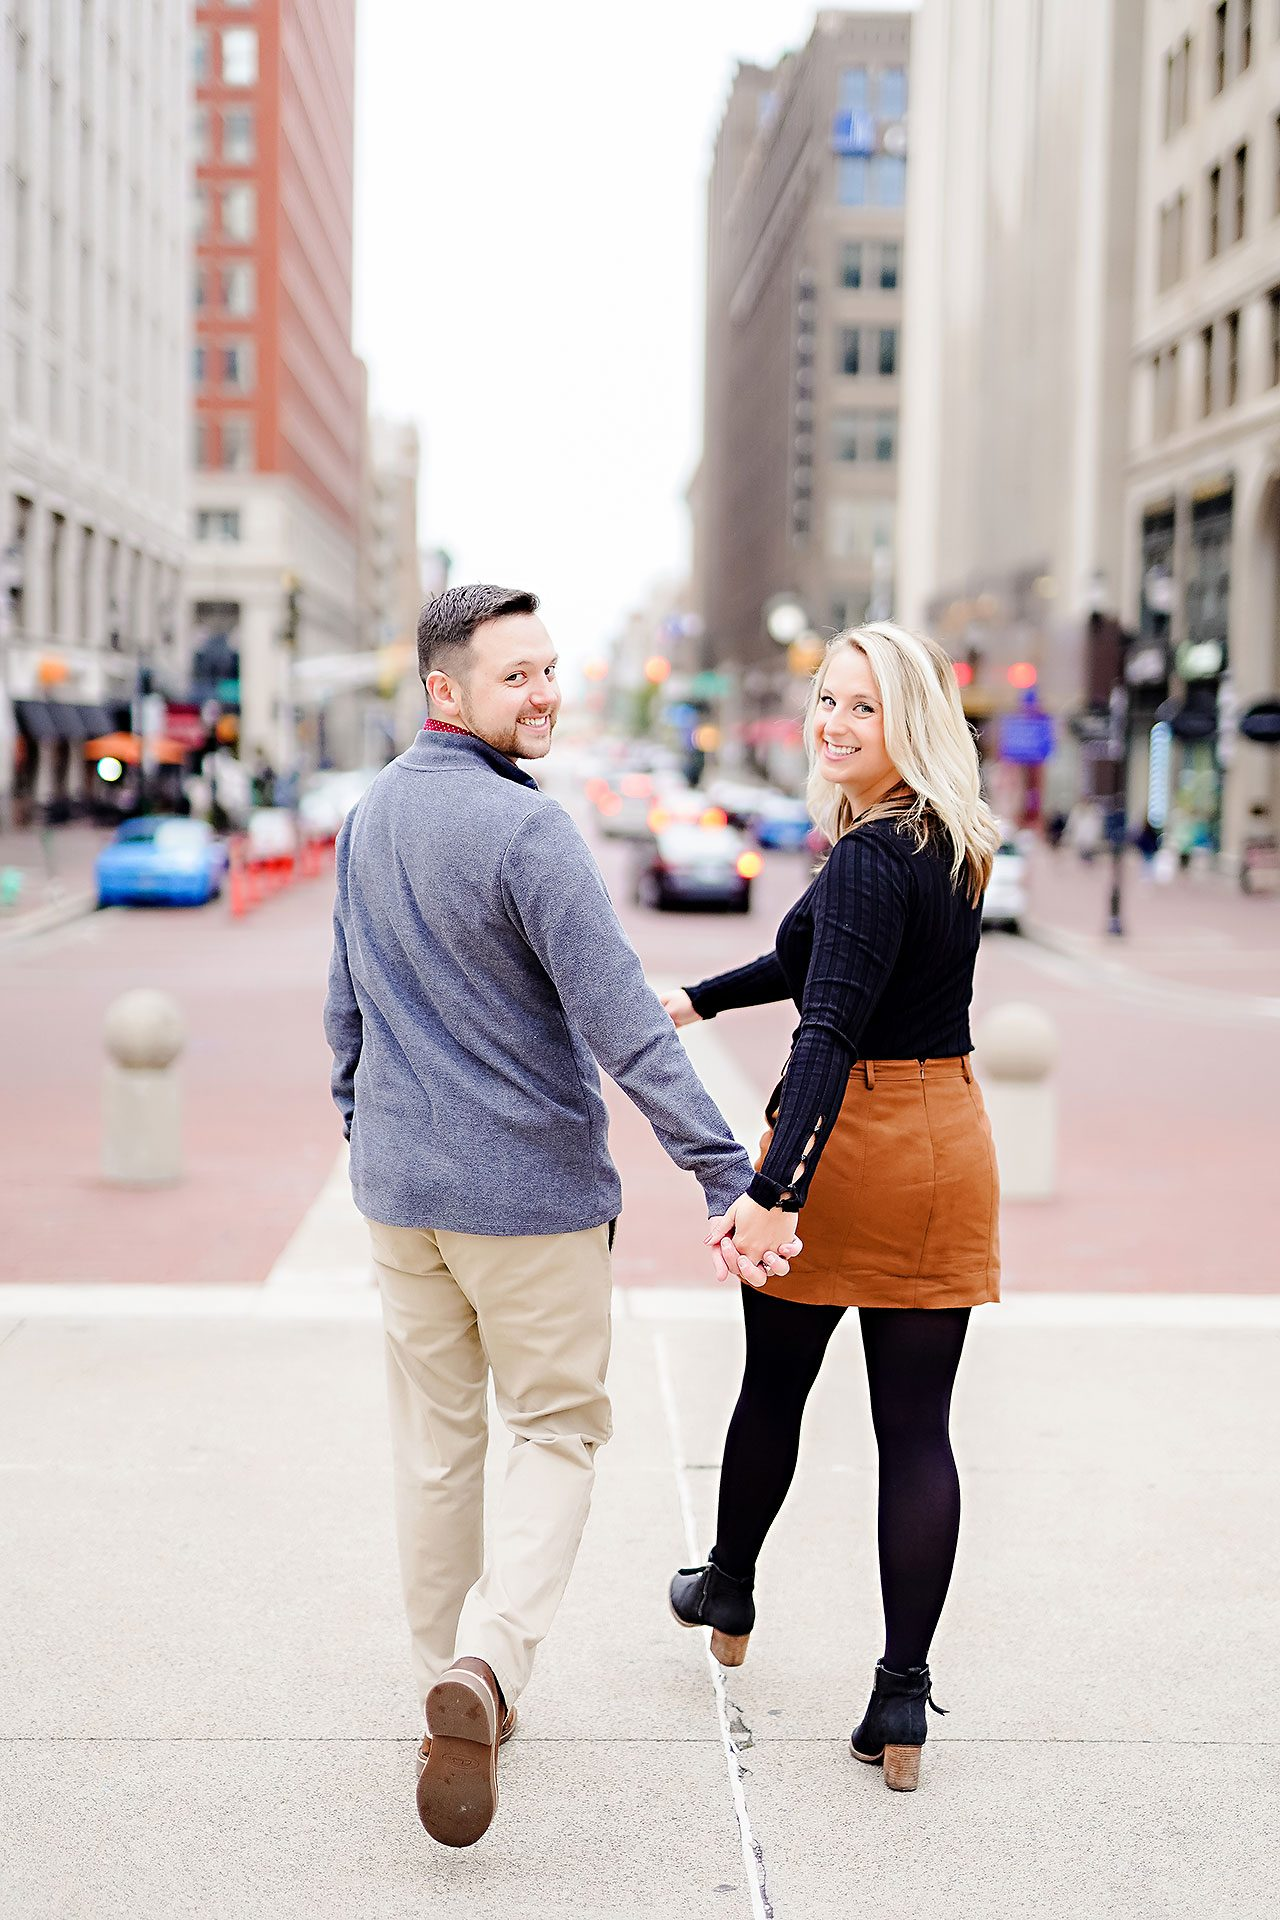 Kristen Jonny Indianapolis Downtown Engagement Session 095